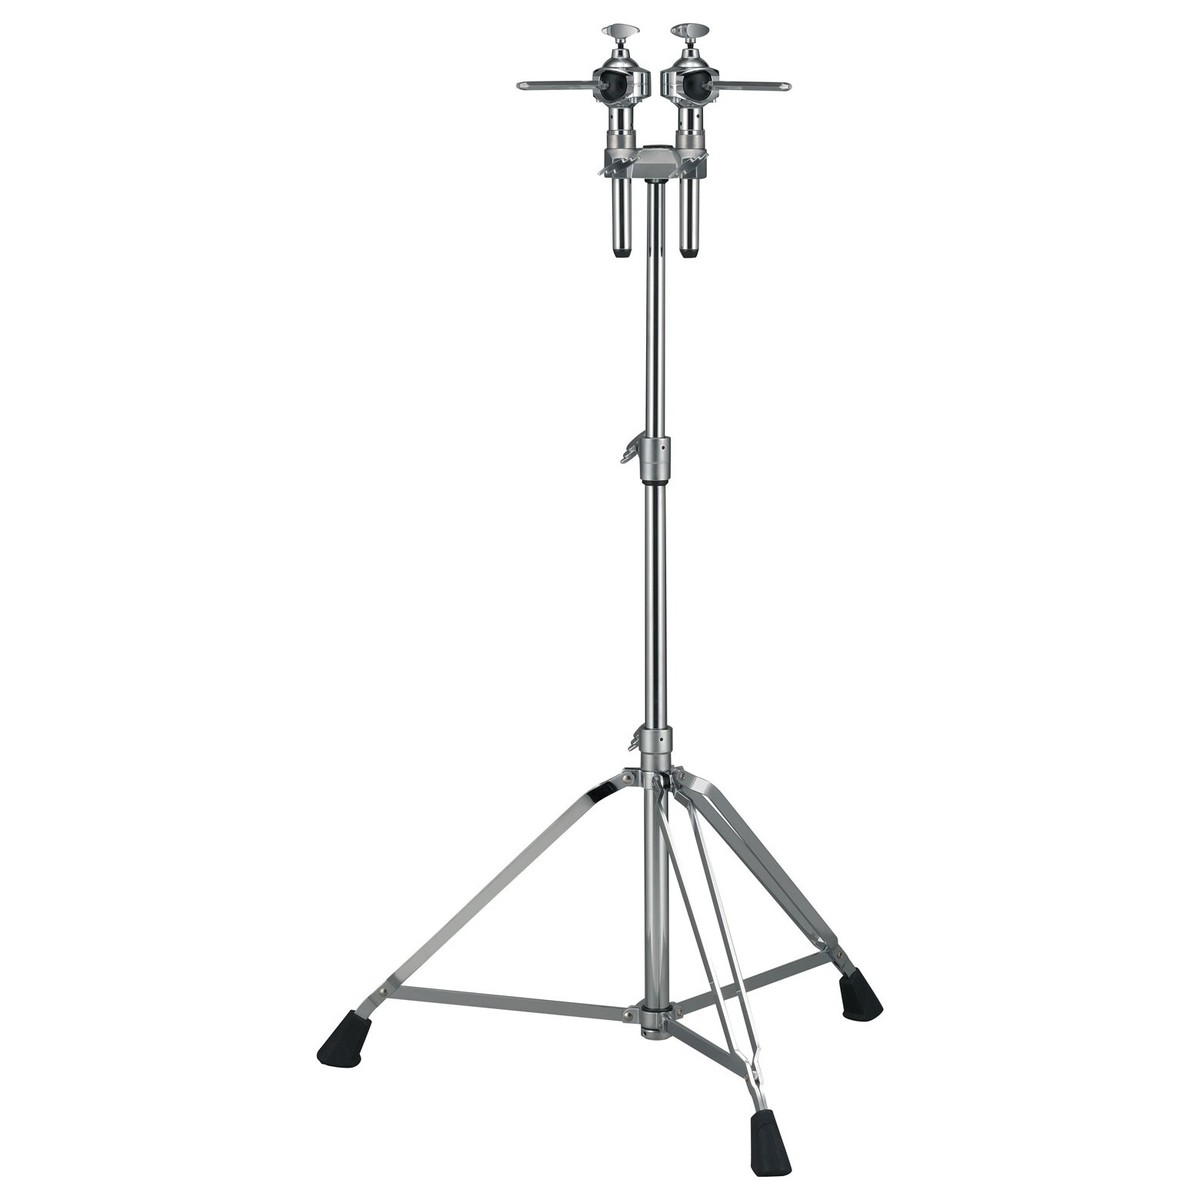 Yamaha Ws950a Double Tom Stand At Gear4music